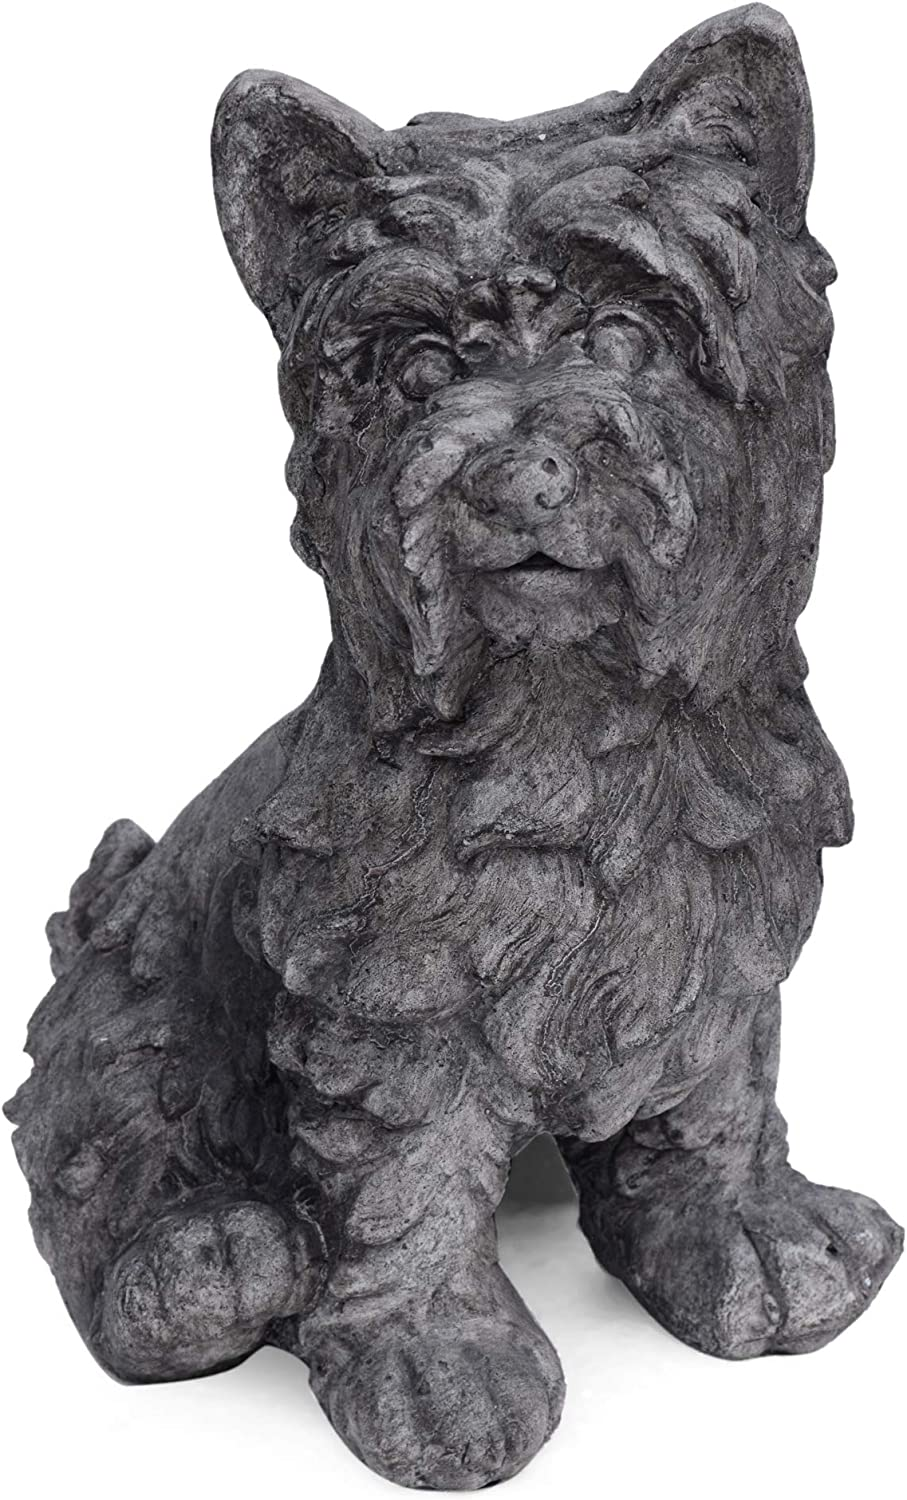 Christopher Knight Home 309255 Seth Outdoor Terrier Dog Garden Statue, Antique Gray Finish